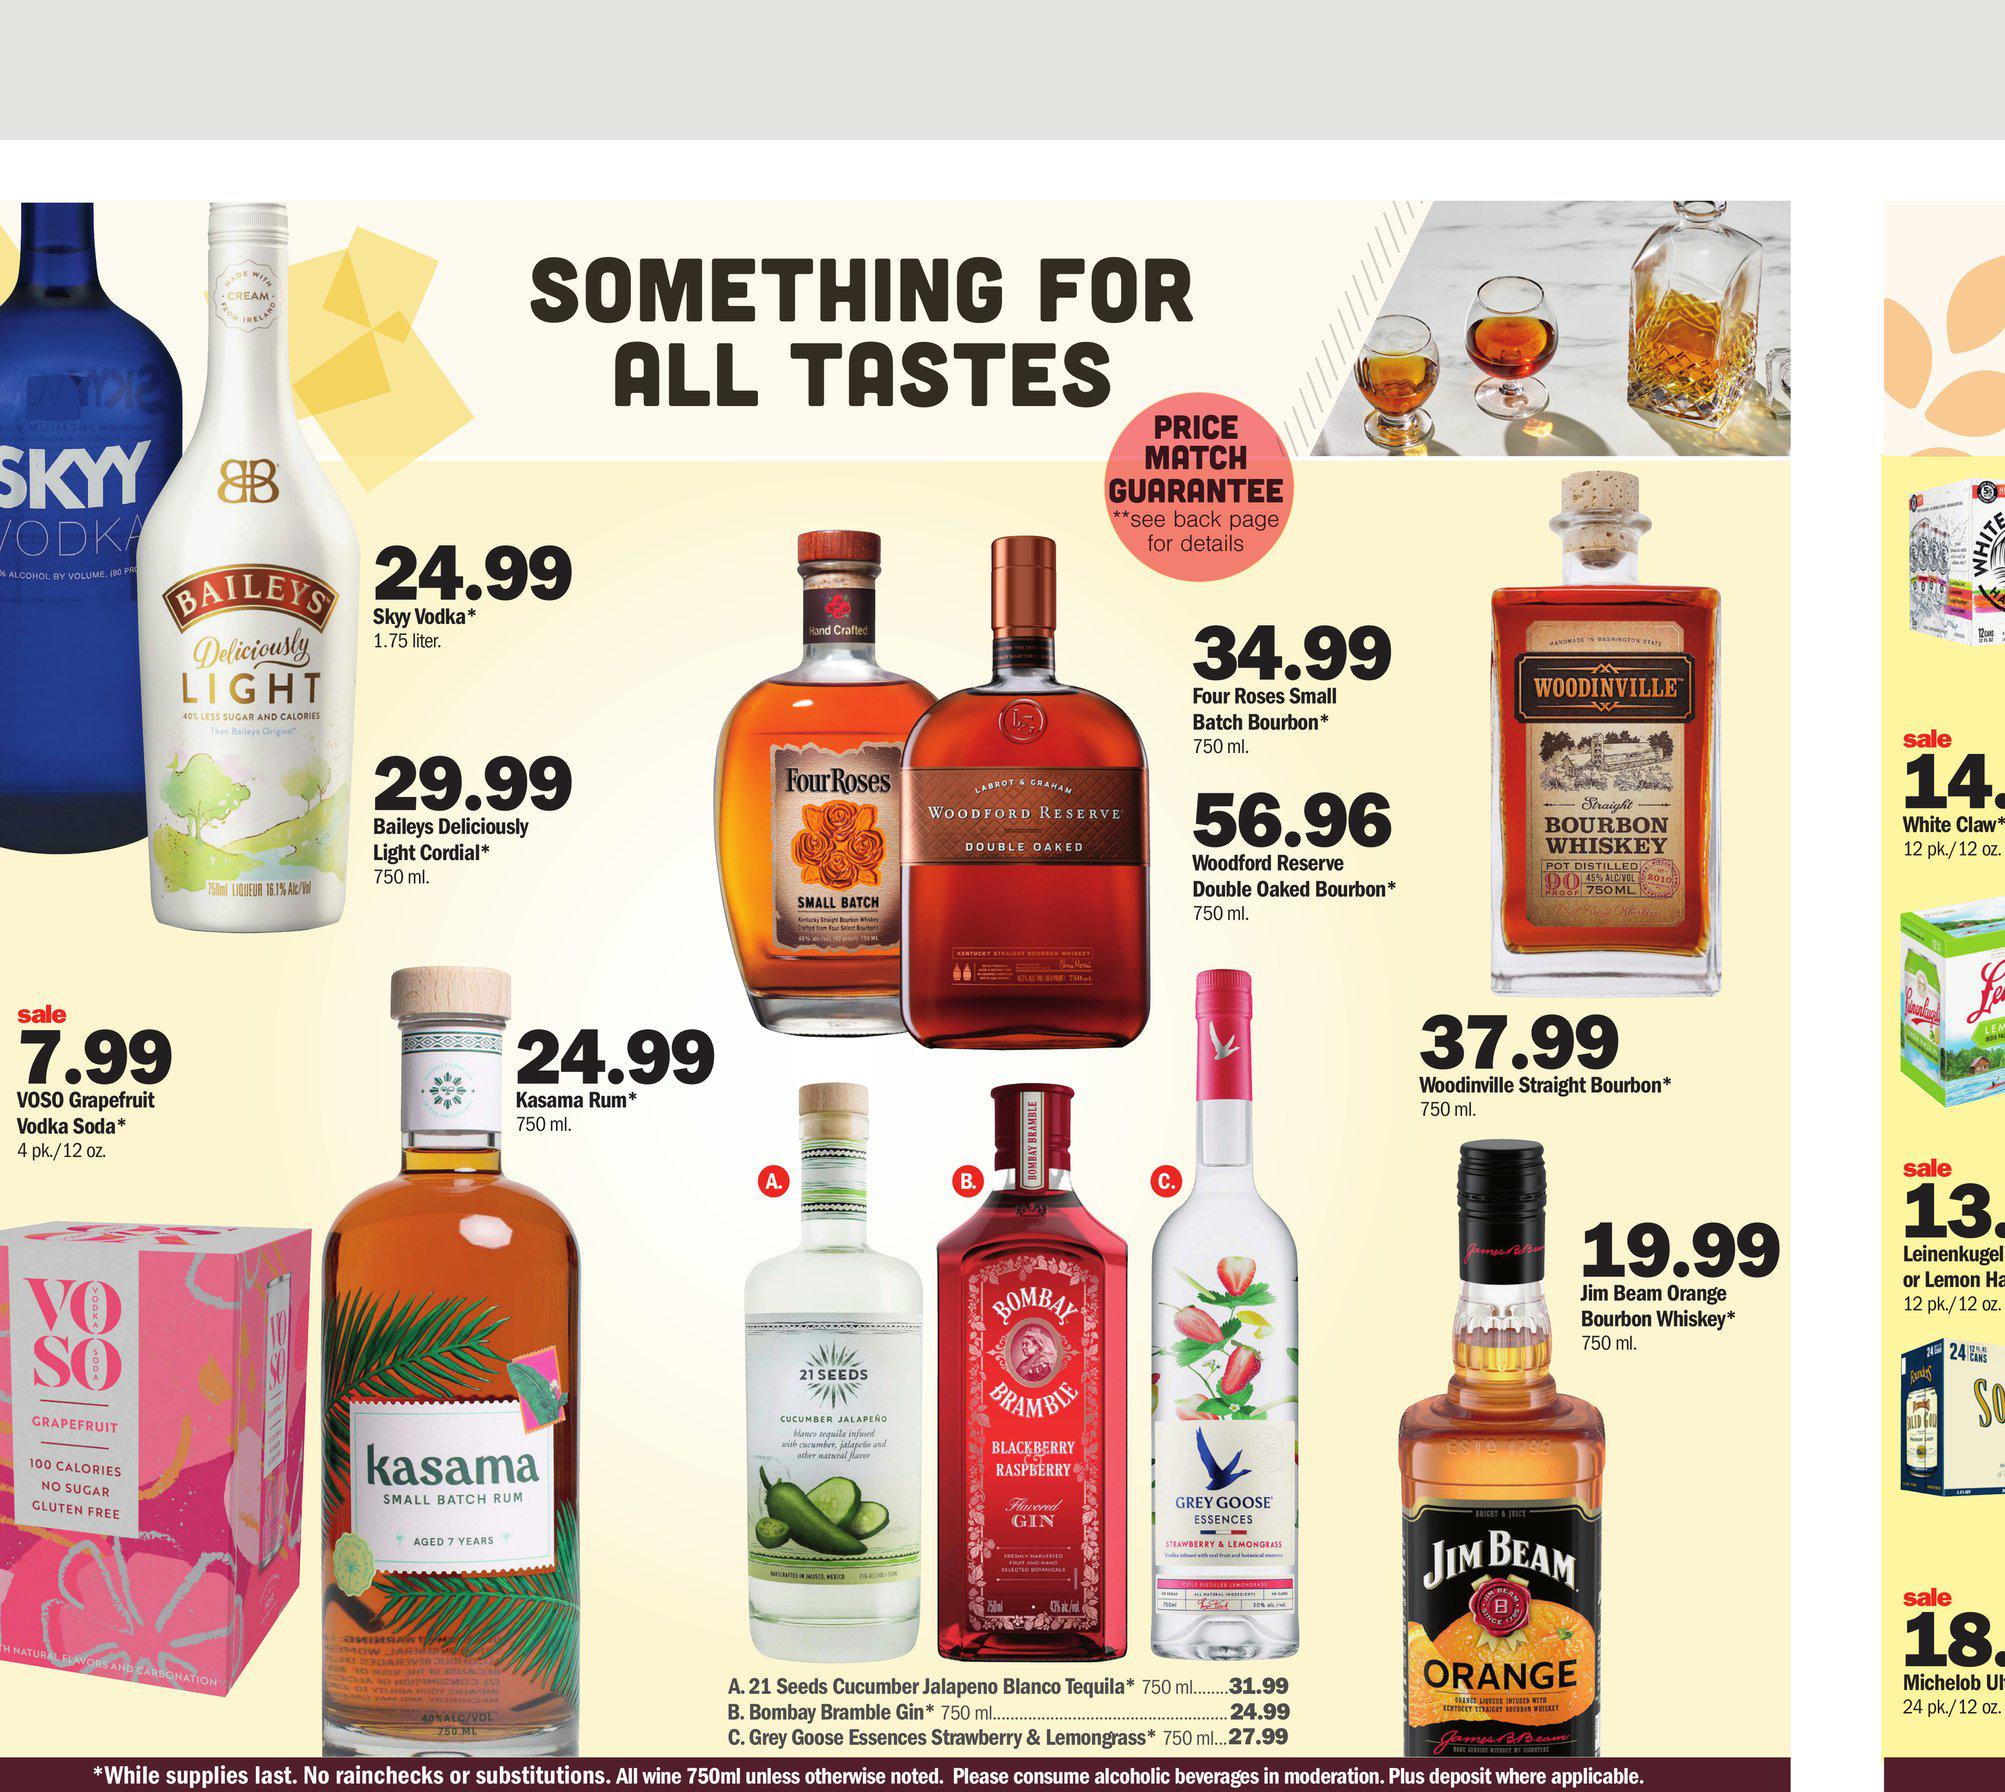 11.07.2021 Meijer ad 4. page